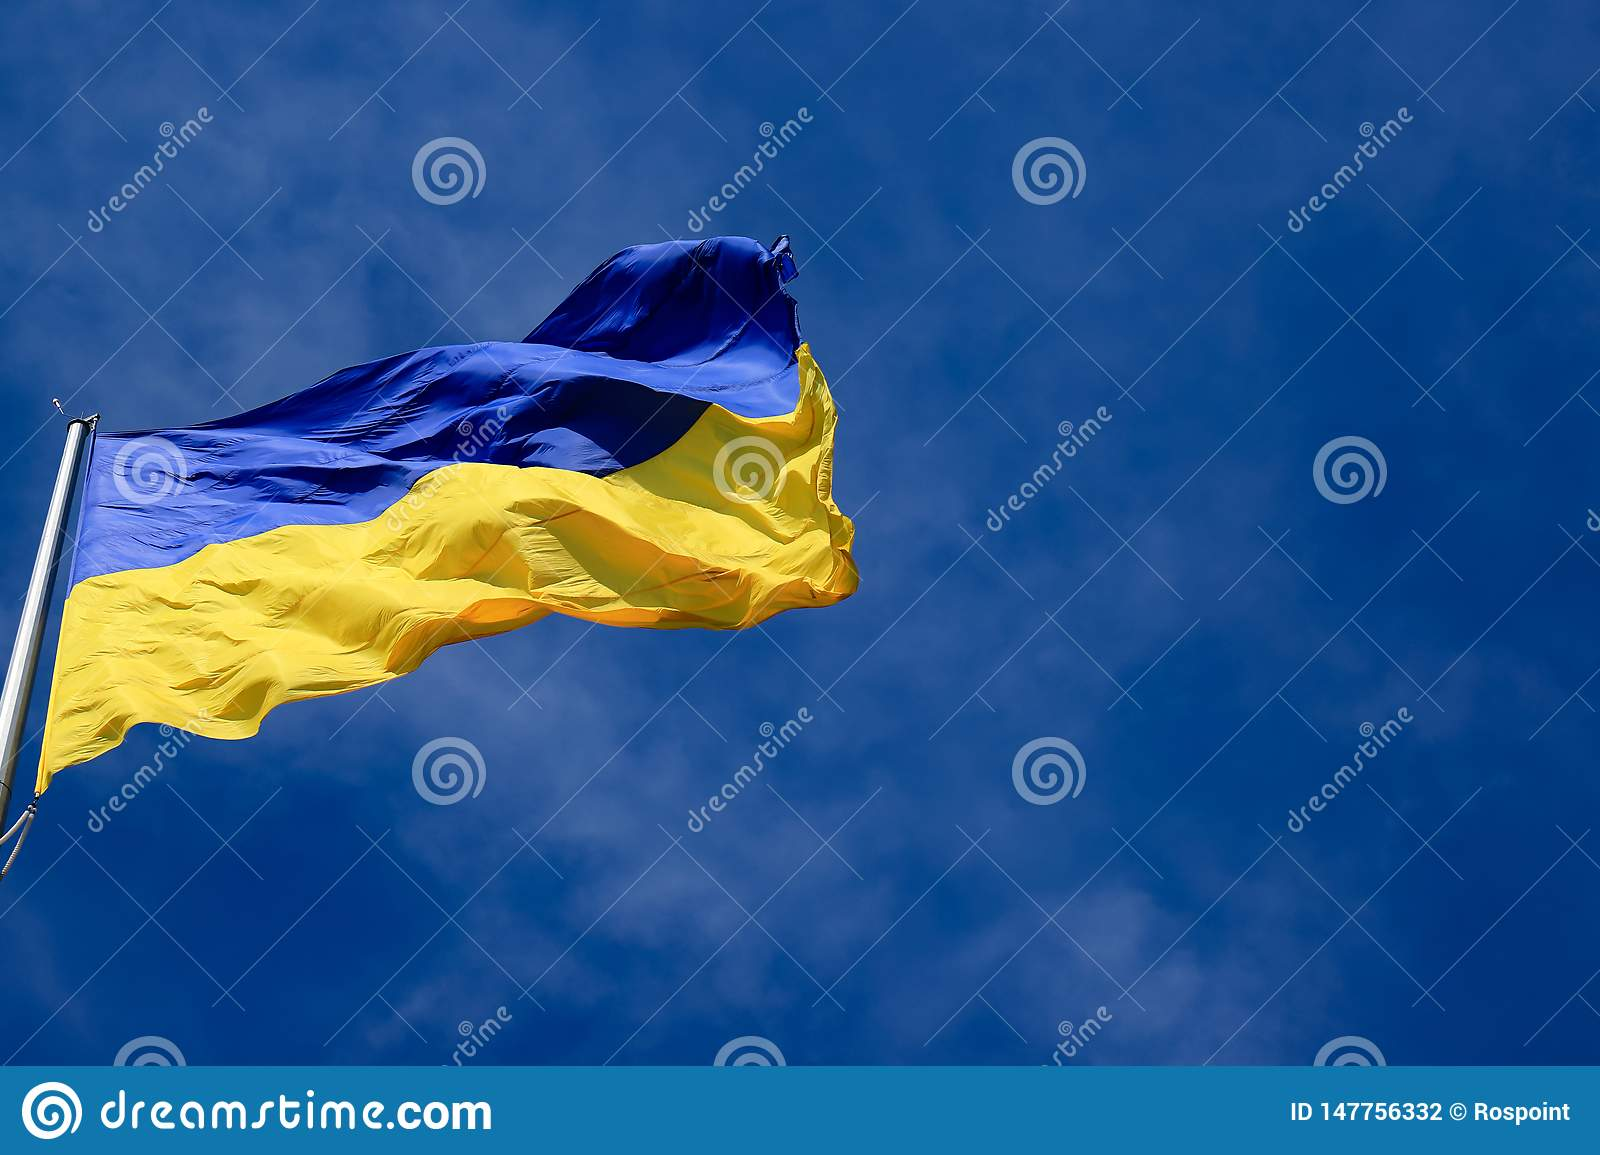 Large national flag of Ukraine in the blue sky. Big yellow blue Ukrainian state flag in the Dnepr city, Dnepropetrovsk